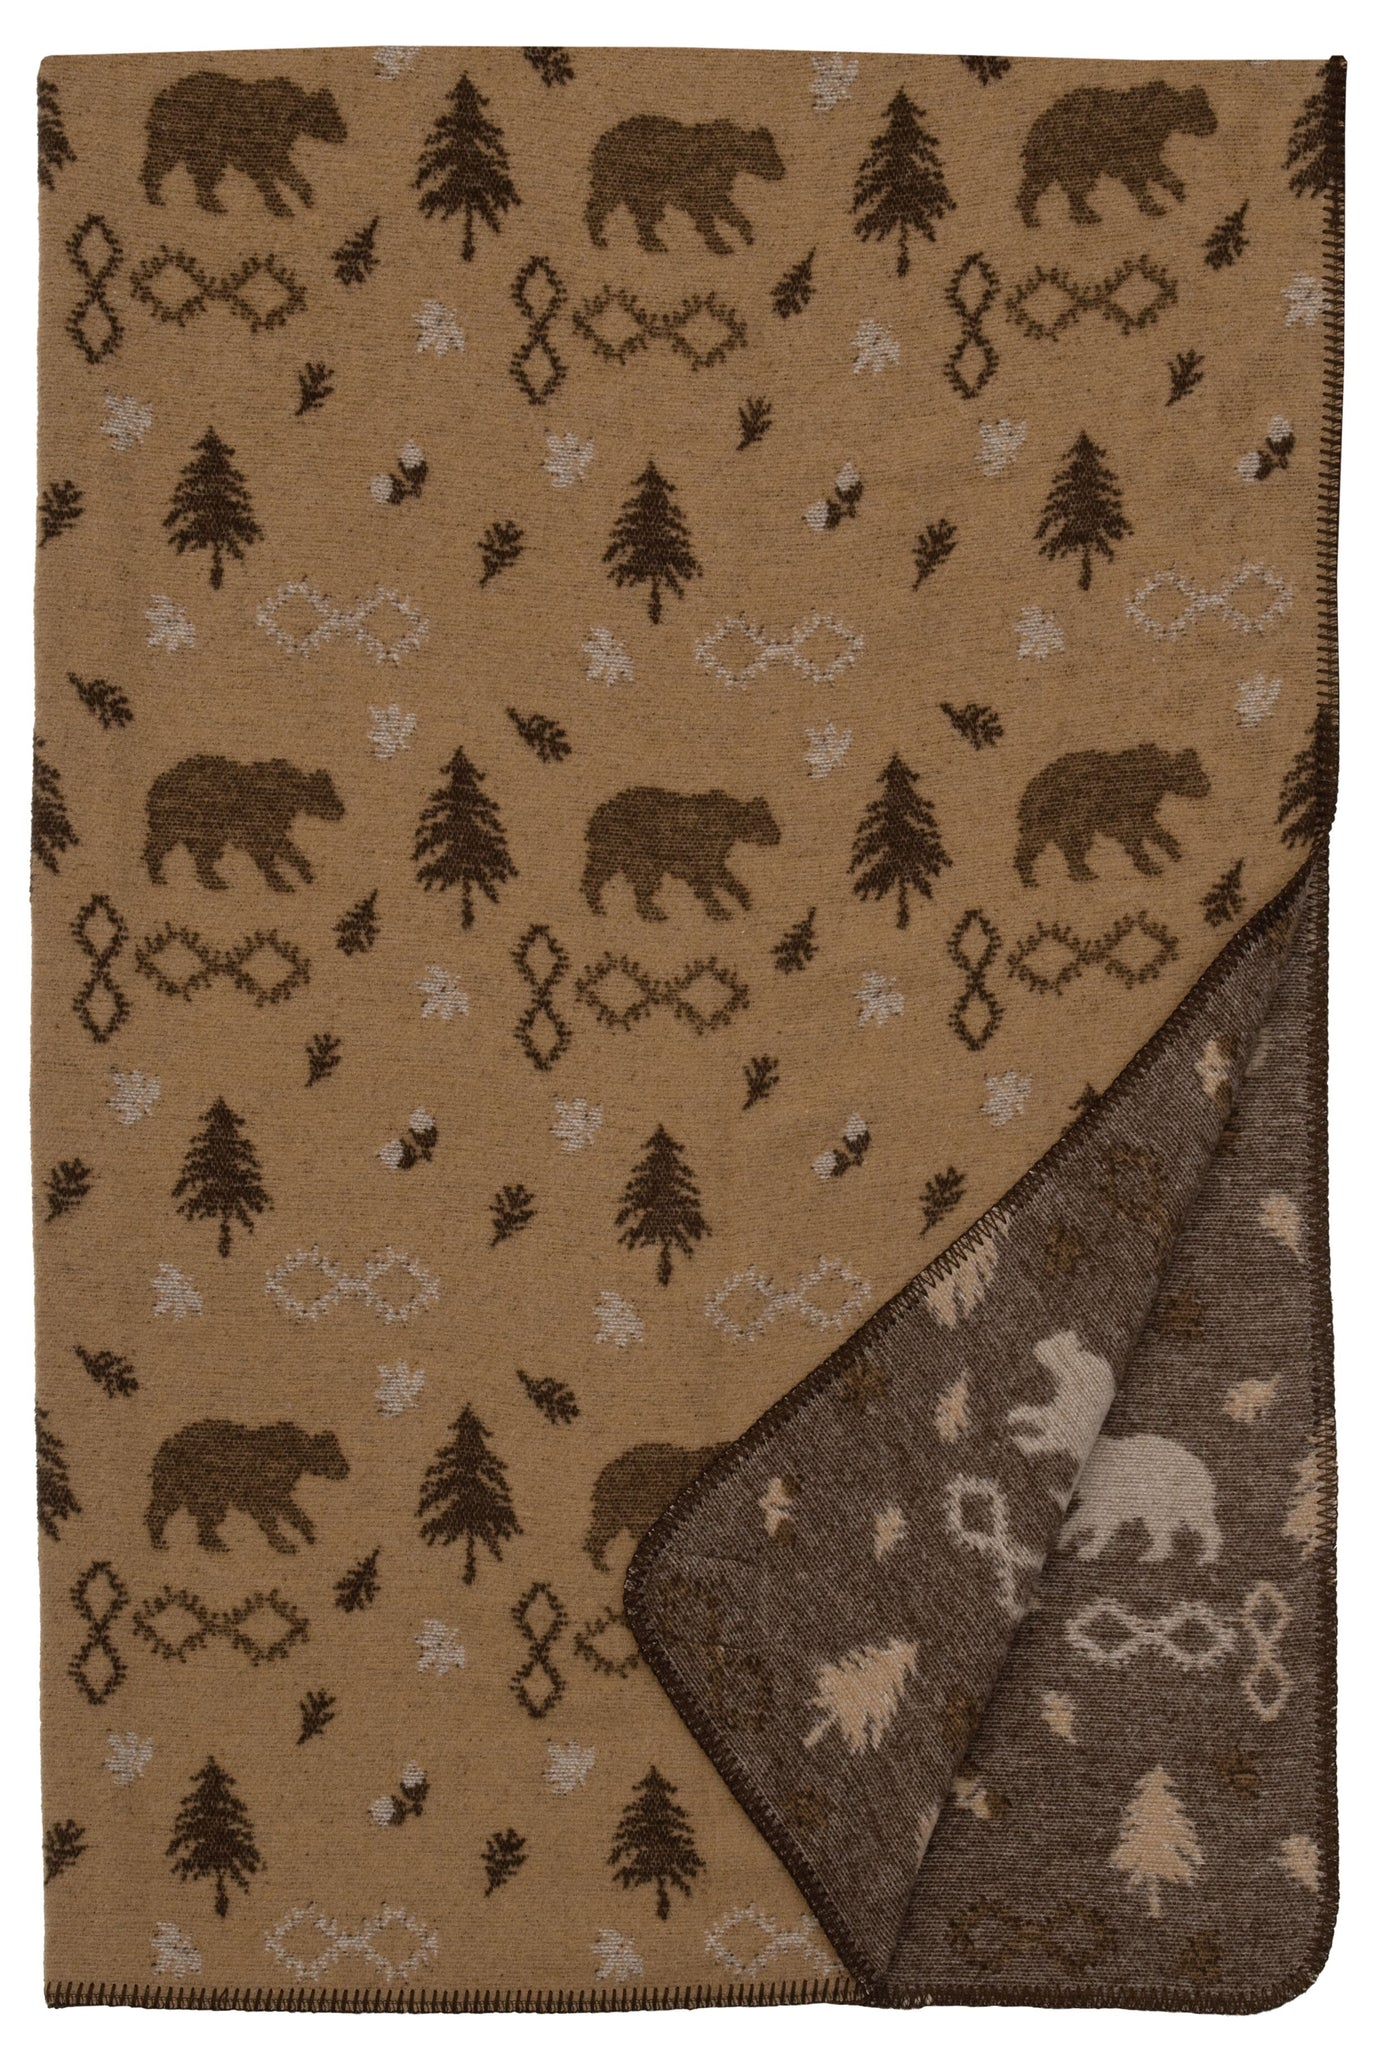 Gunnison Throw Wooded River - unique linens online